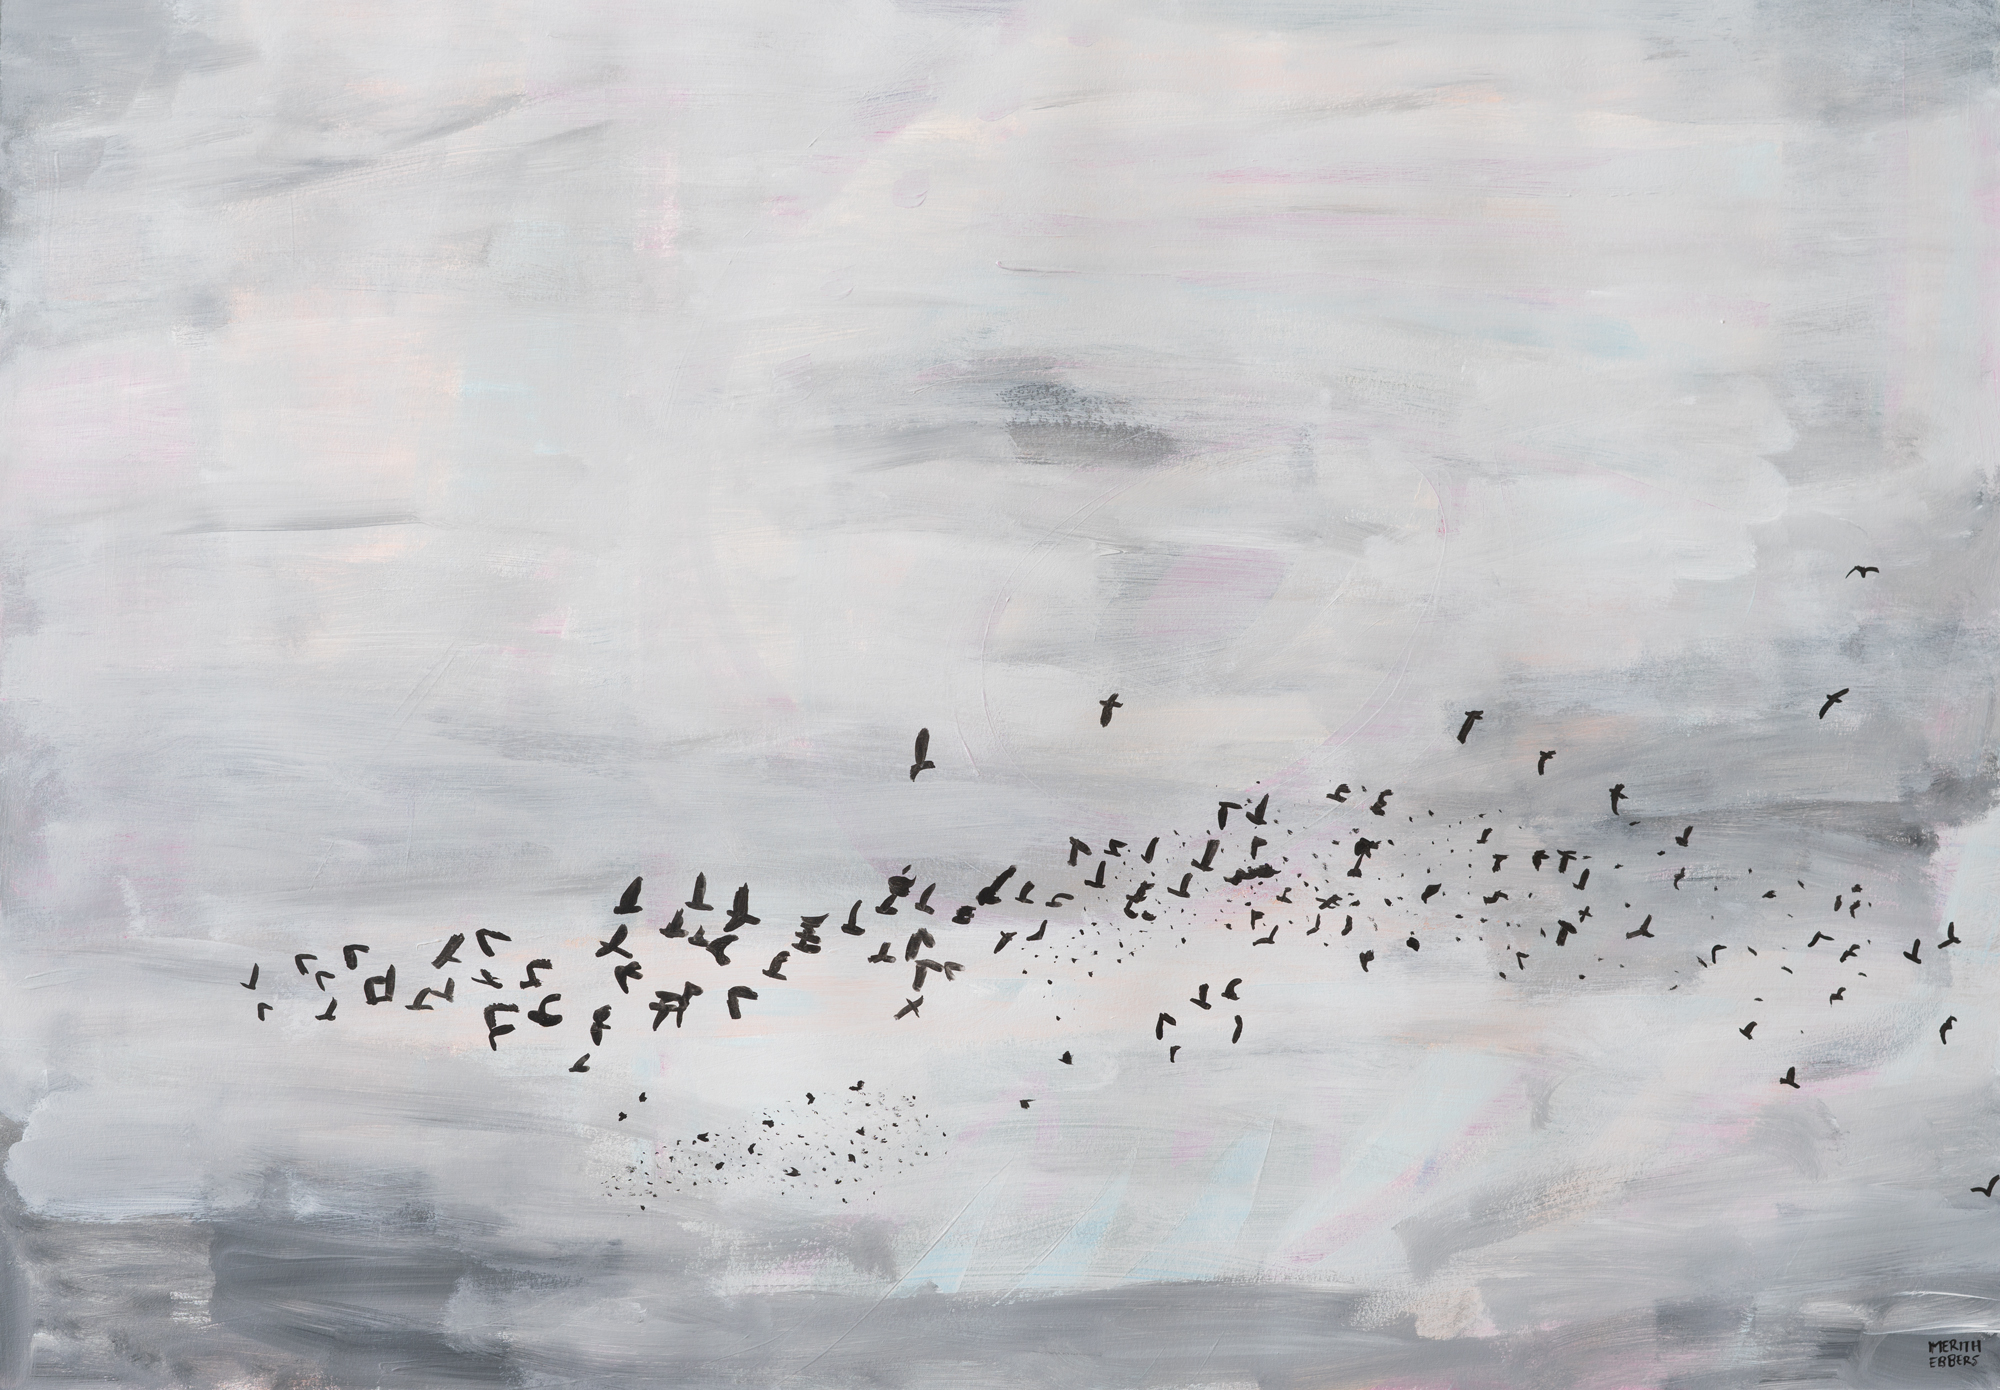 An acrylic painting of a flock of birds flying through the air